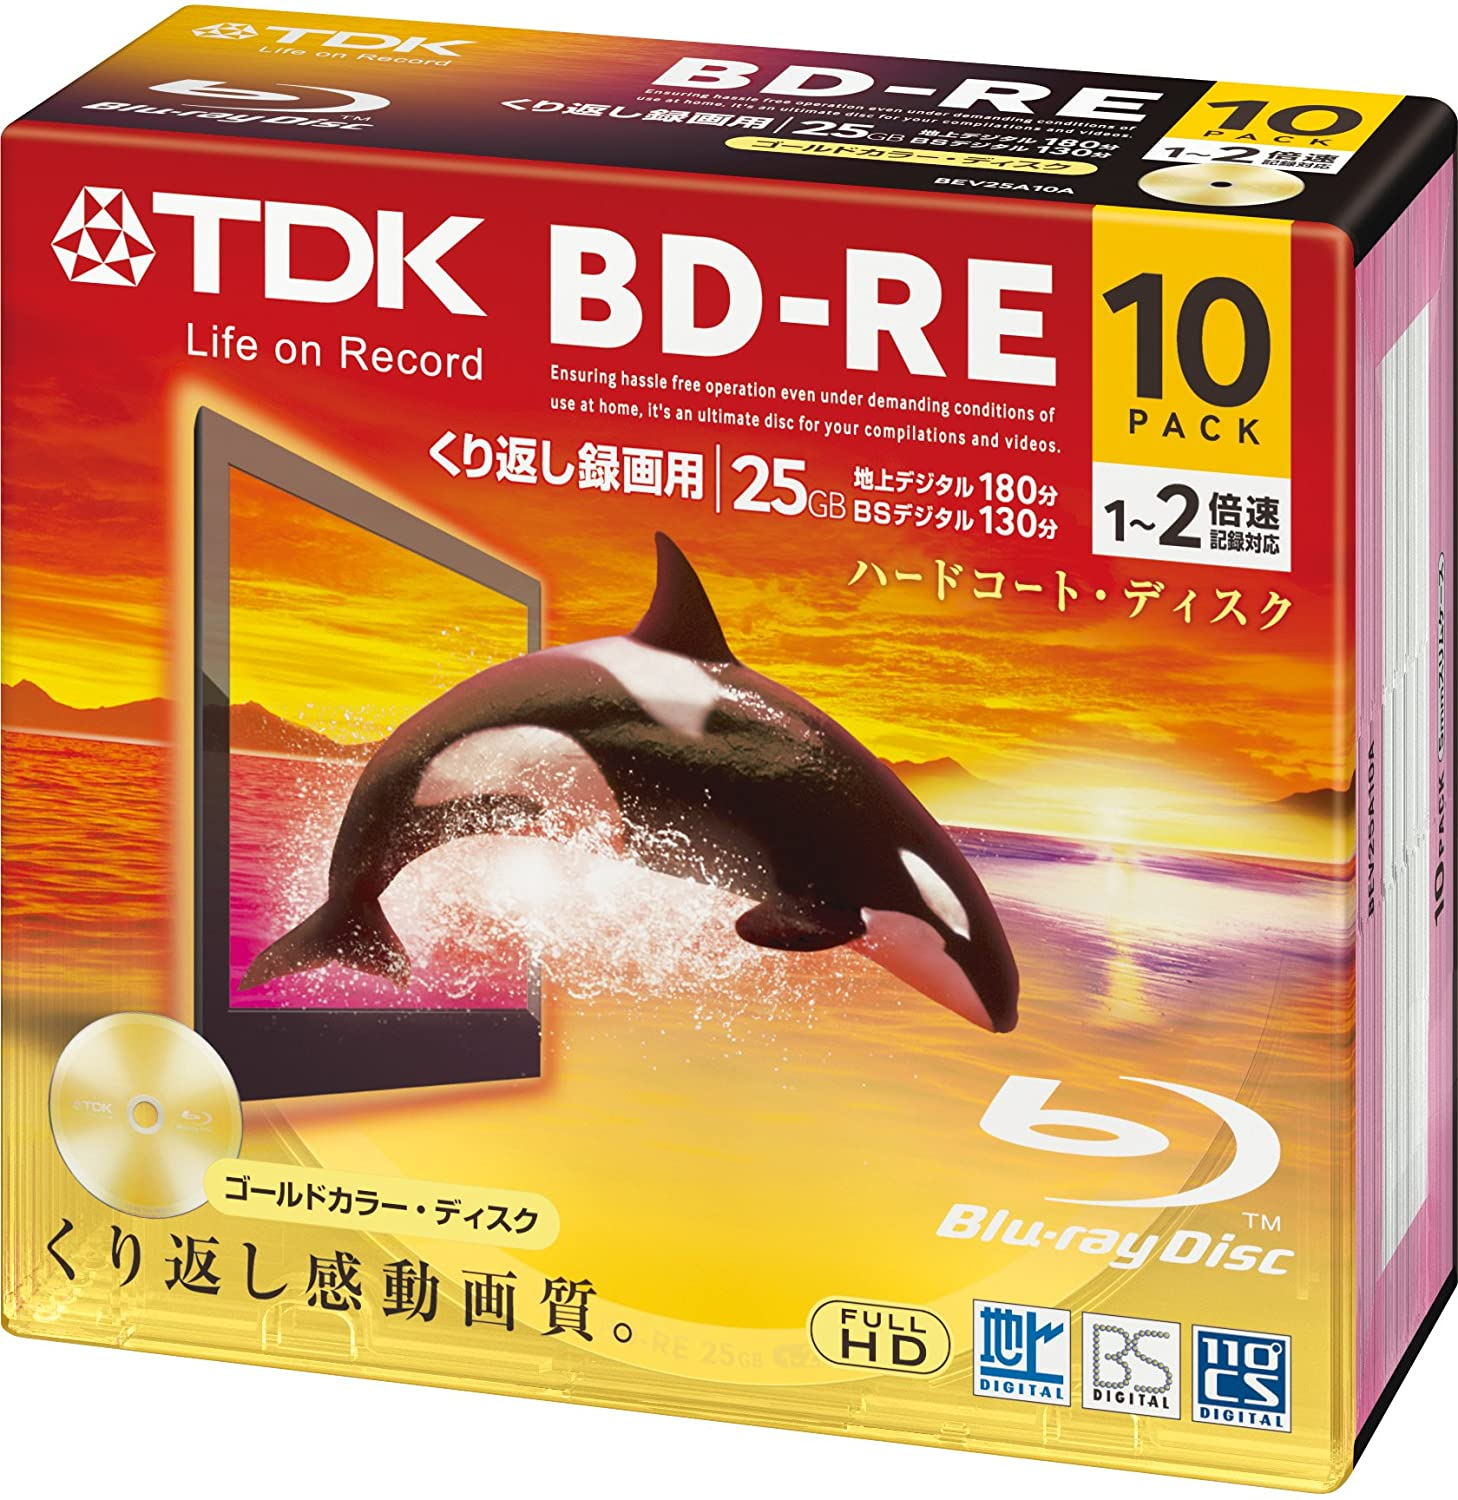 TDK Blu-ray BD-RE Re-writable Gold Color Disk 25GB 2x Speed 10 Pack | Blu-ray Disc Rewritable Format Ver. 2.1 (Japan Import) TDK Media BEV25A10A